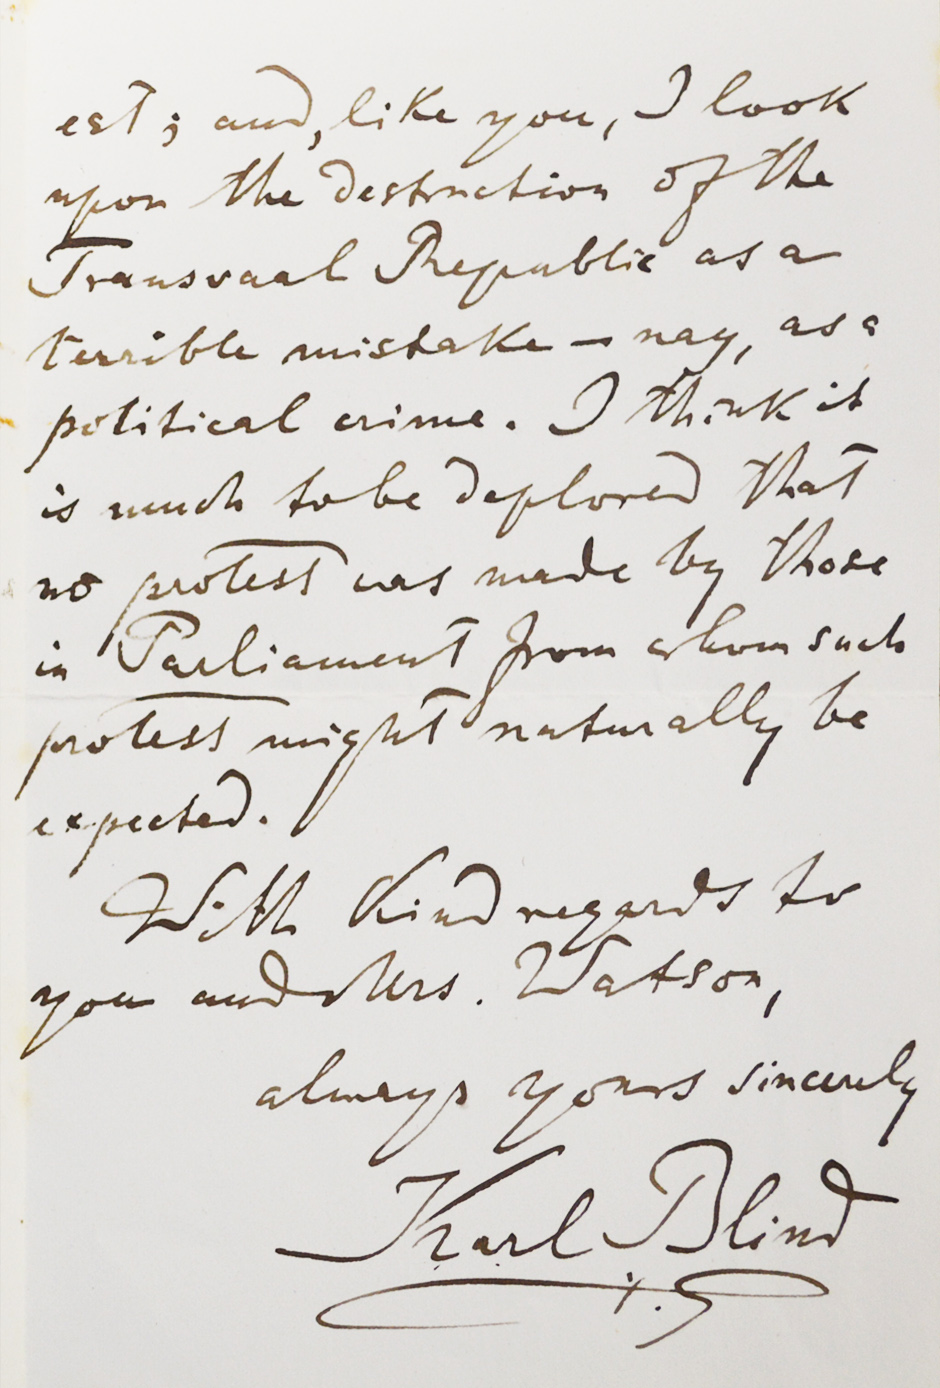 letter from German revolutionist and writer Karl Blind to Robert